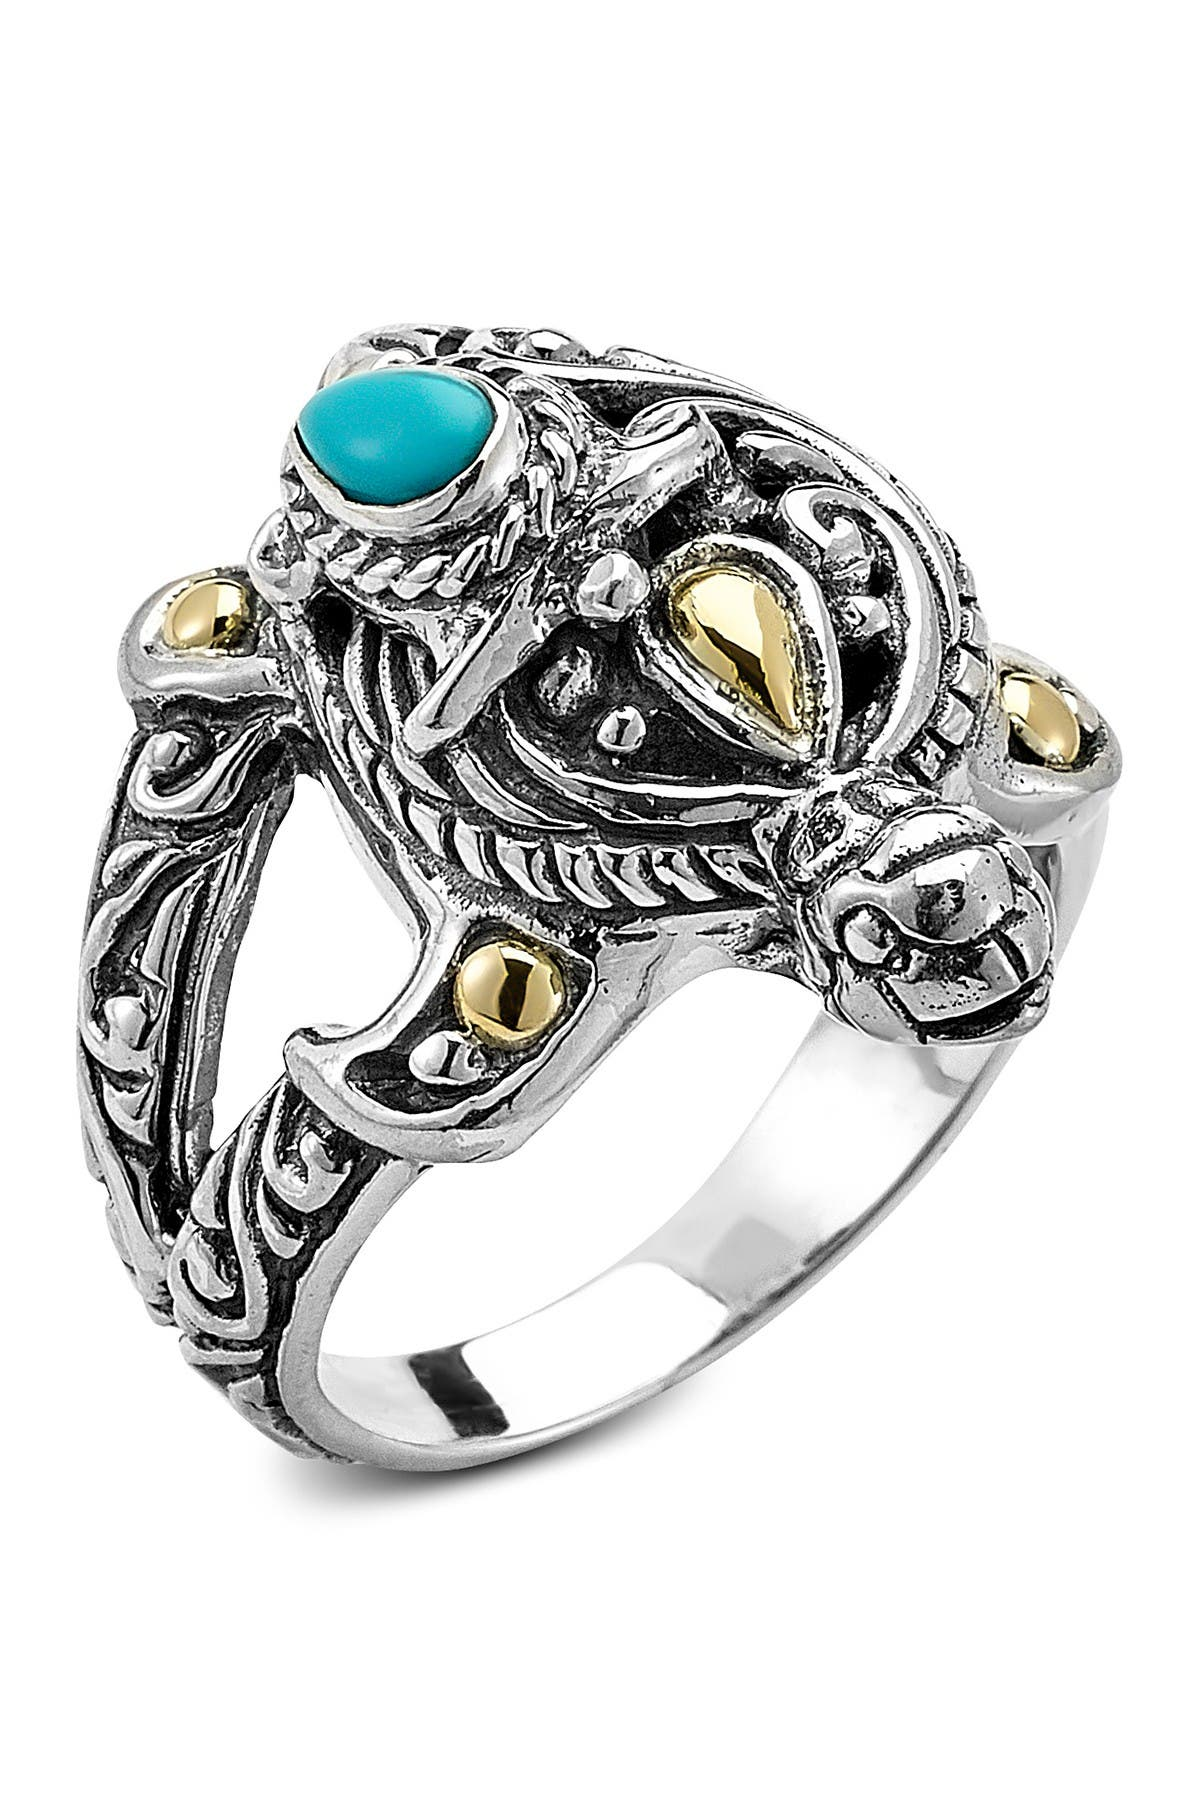 Image of Samuel B Jewelry Sterling Silver 18K Turtle Ring W/ Sleeping Beauty Turquoise